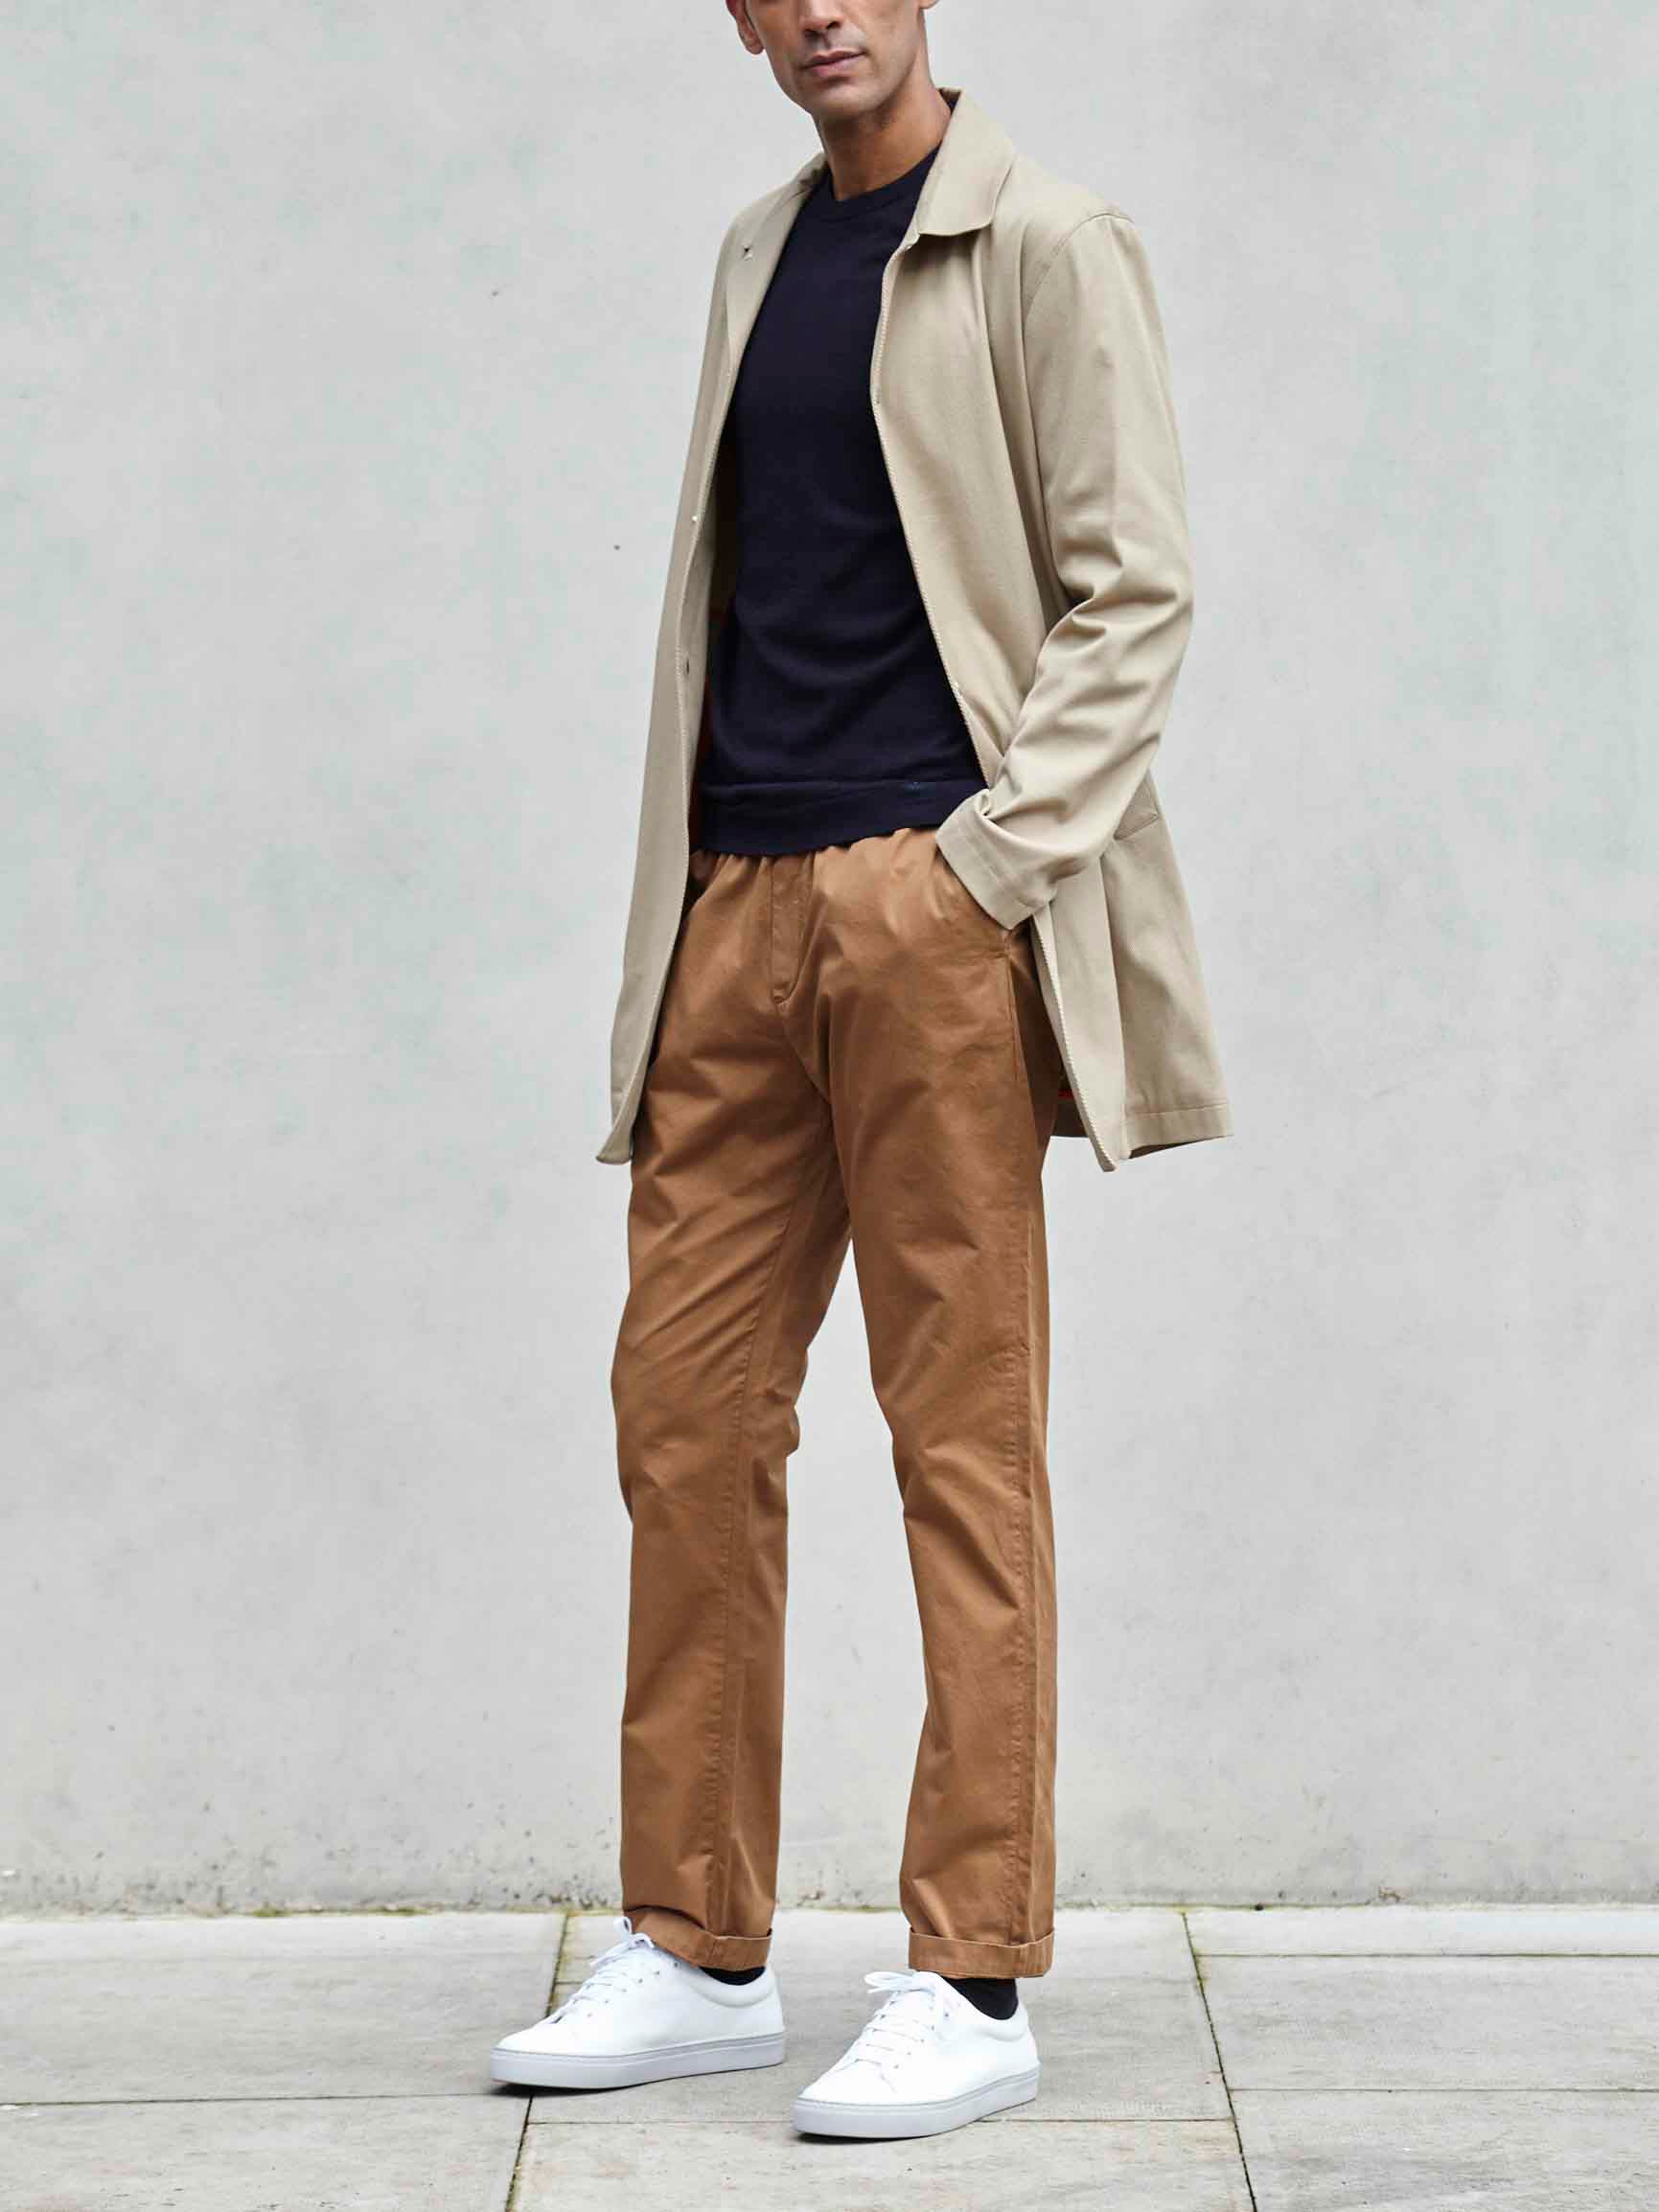 Men's outfit idea for 2021 with stone trench coat, navy crew neck knitted jumper, stone chinos, white trainers. Suitable for spring, autumn and winter.